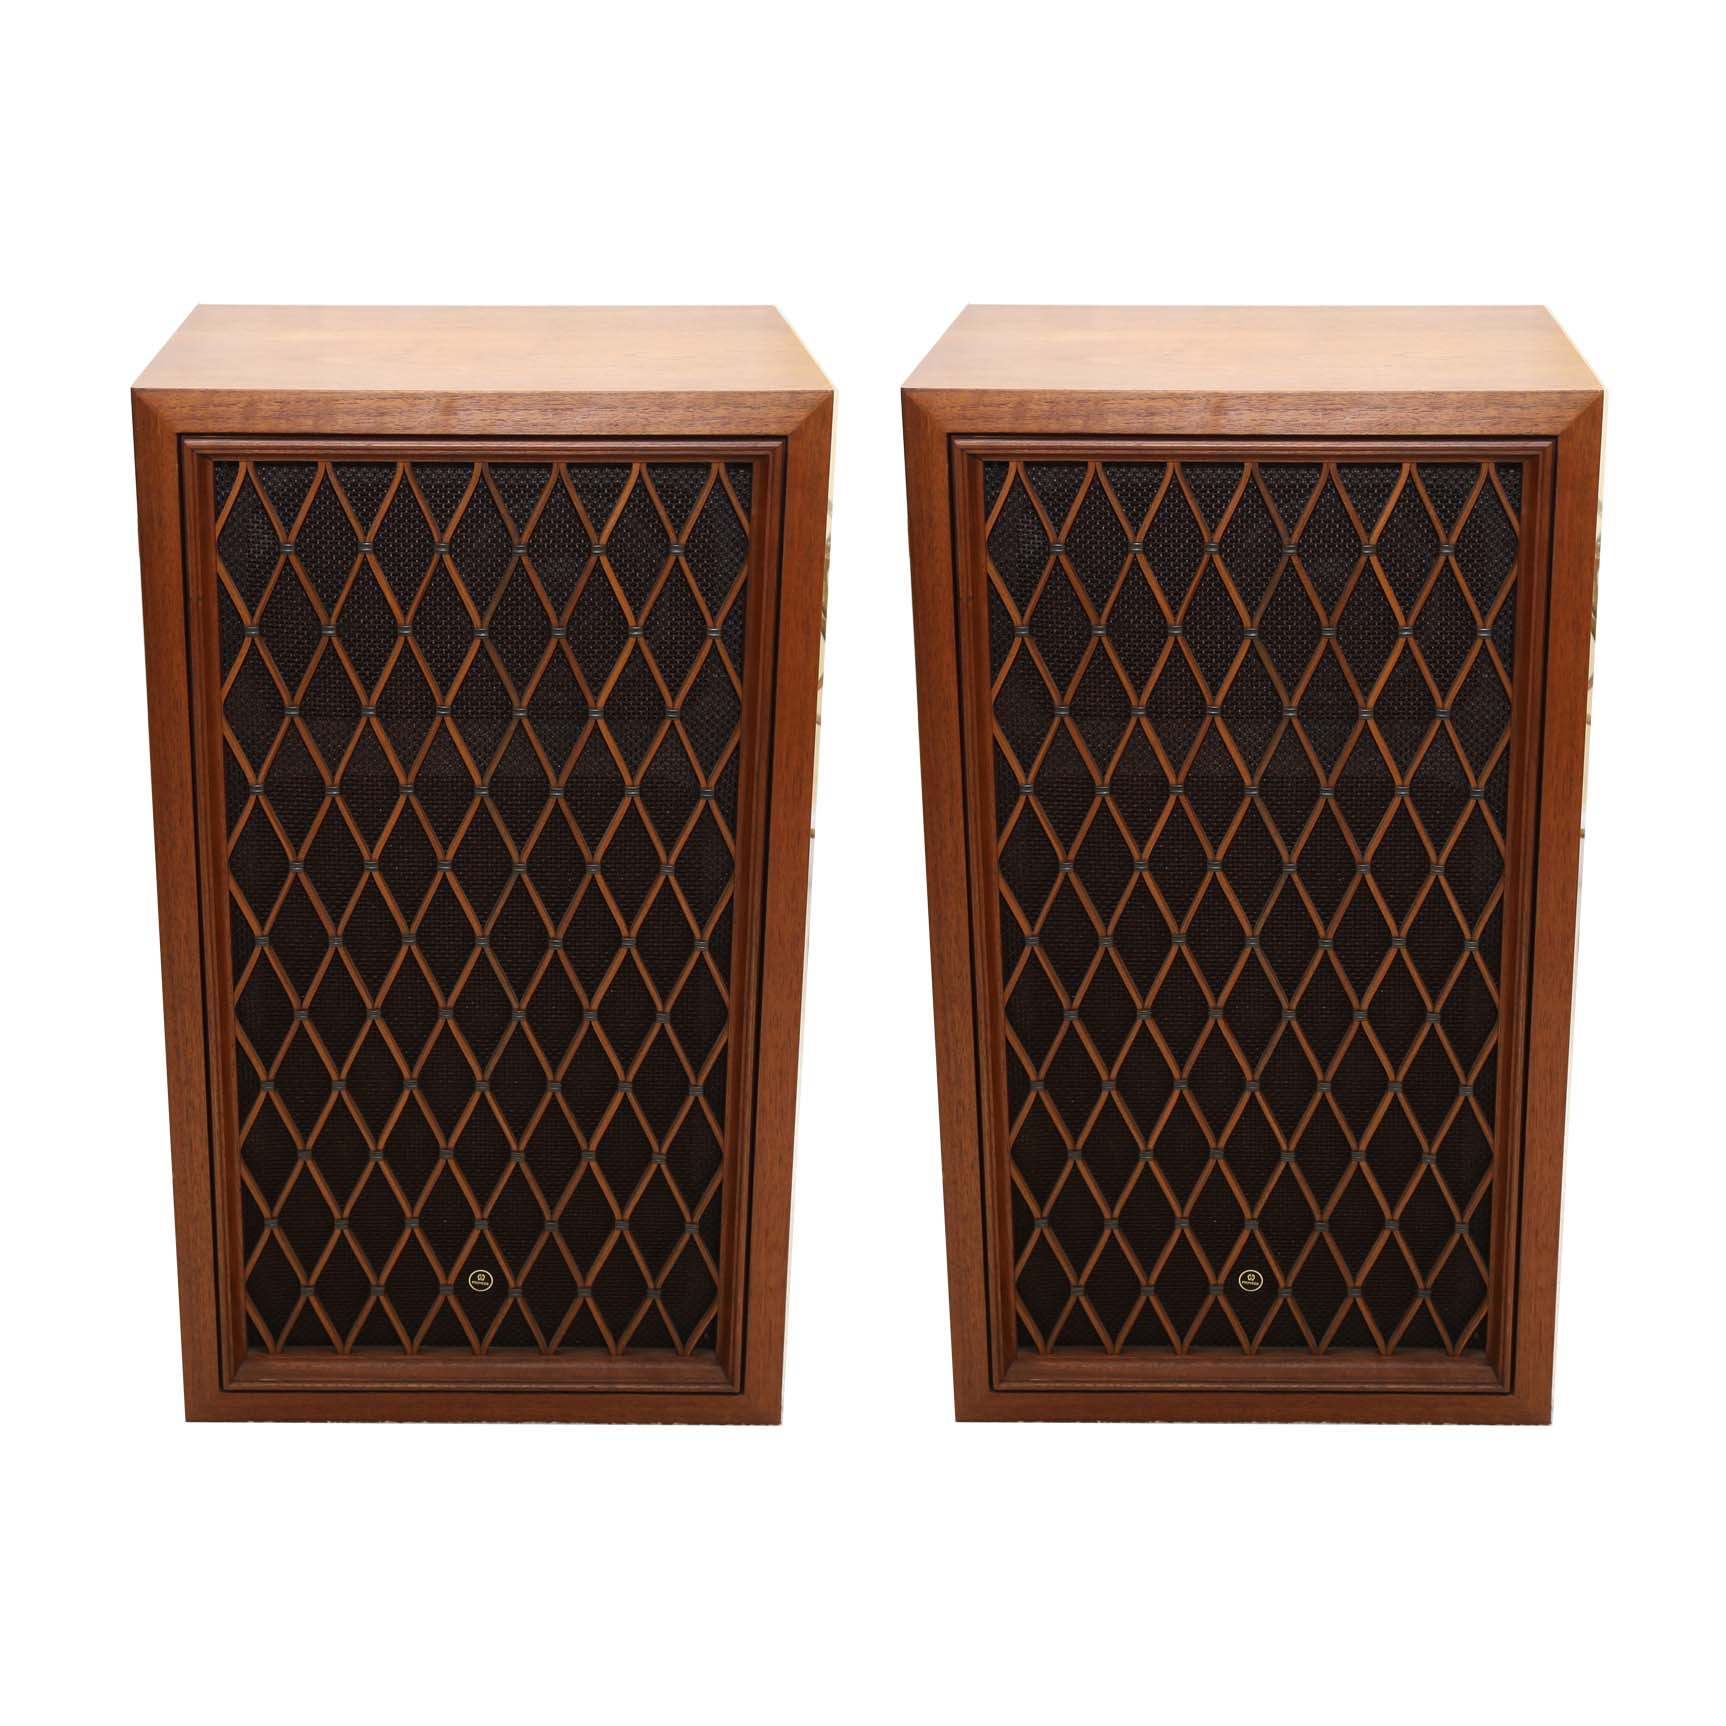 pioneer floor speakers cs. vintage pioneer cs-77 stereo floor speakers cs